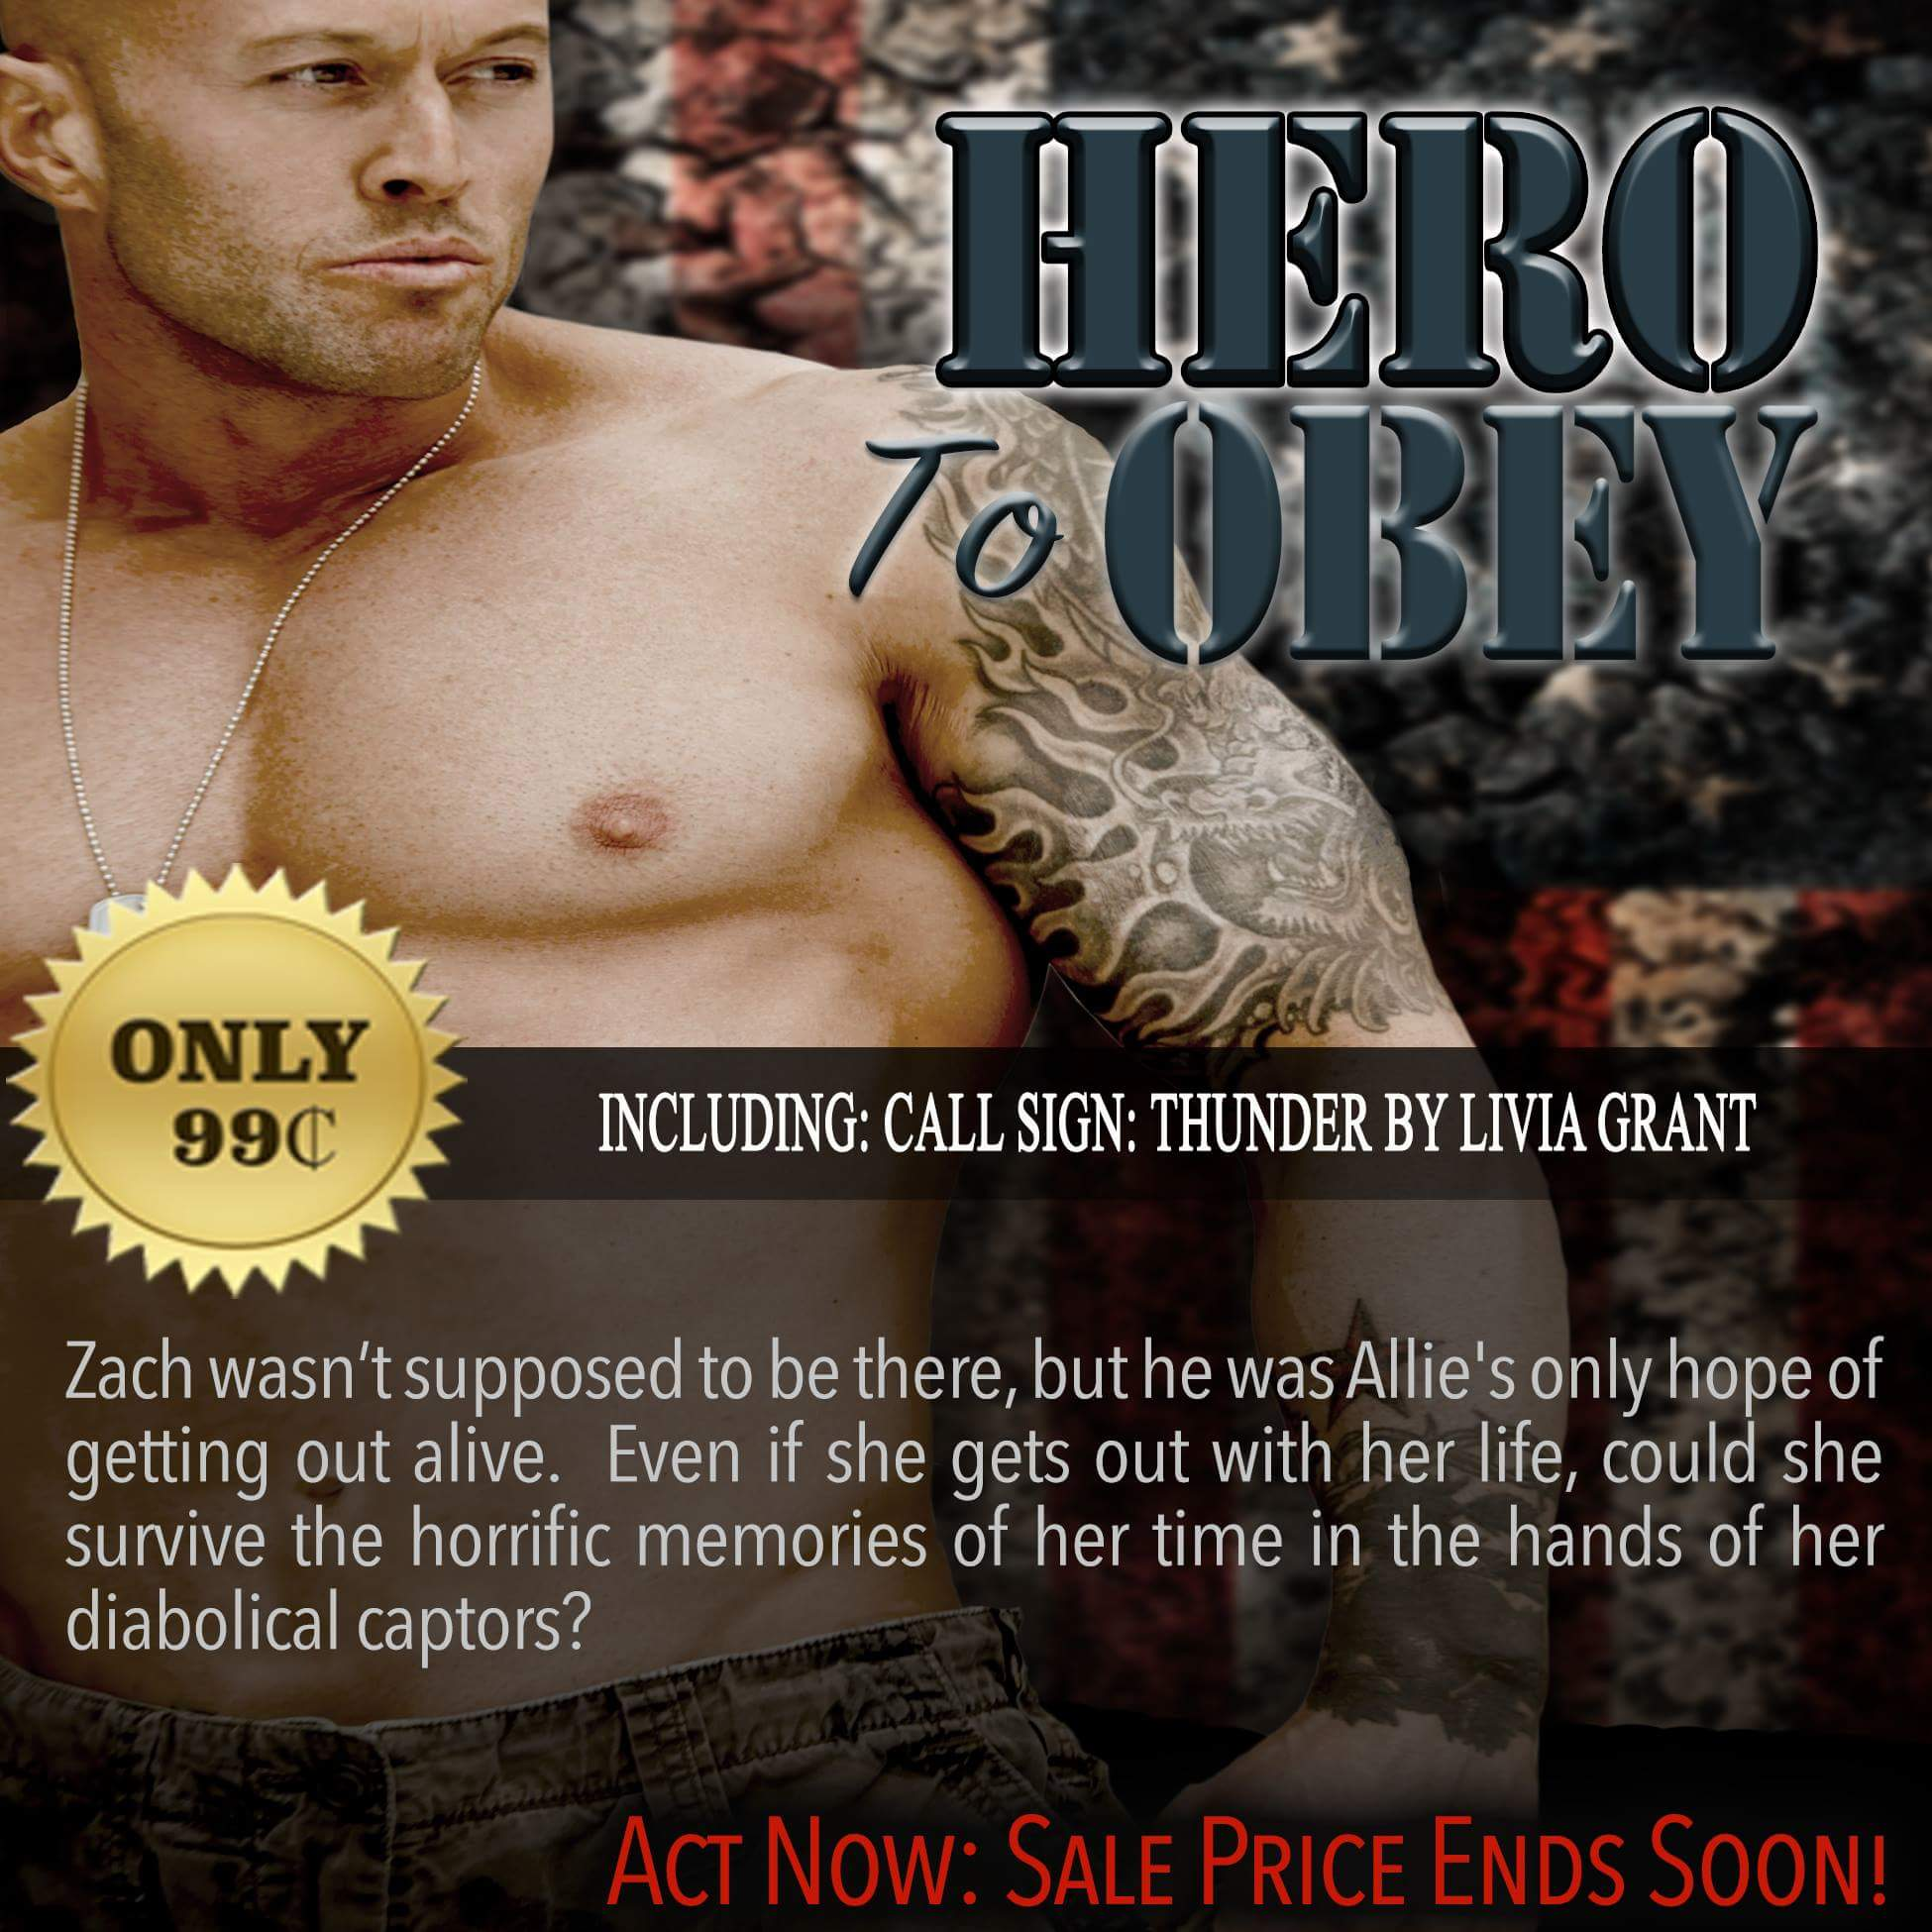 Hero To Obey Book Cover Model Actor John Joseph Quinlan by Livia Grant #JohnQuinlan #Hero2obey